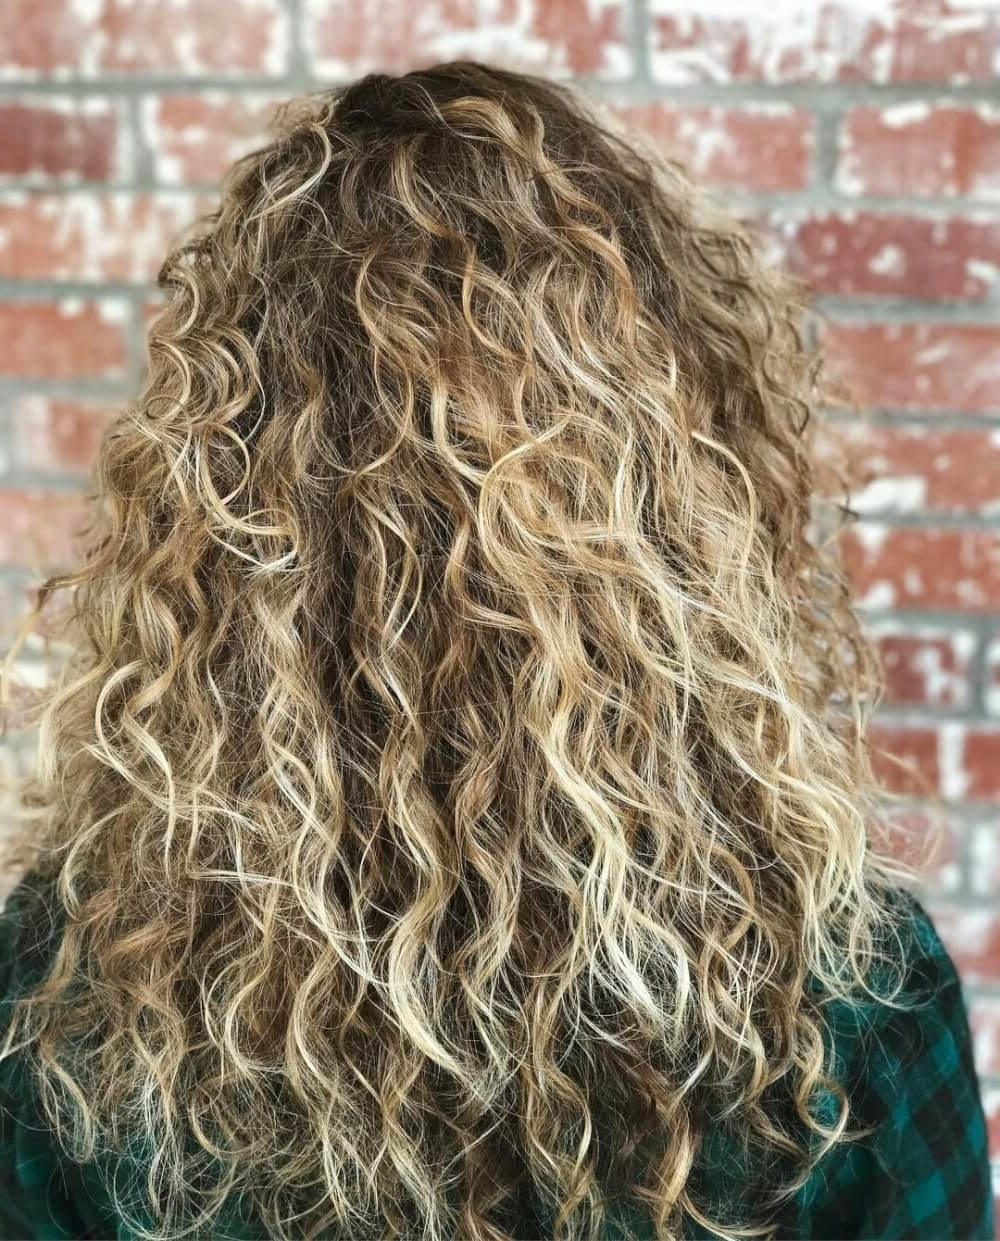 38 Top Blonde Highlights Of 2018 – Platinum, Ash, Dirty, Honey & Dark Regarding Widely Used Icy Highlights And Loose Curls Blonde Hairstyles (View 14 of 20)